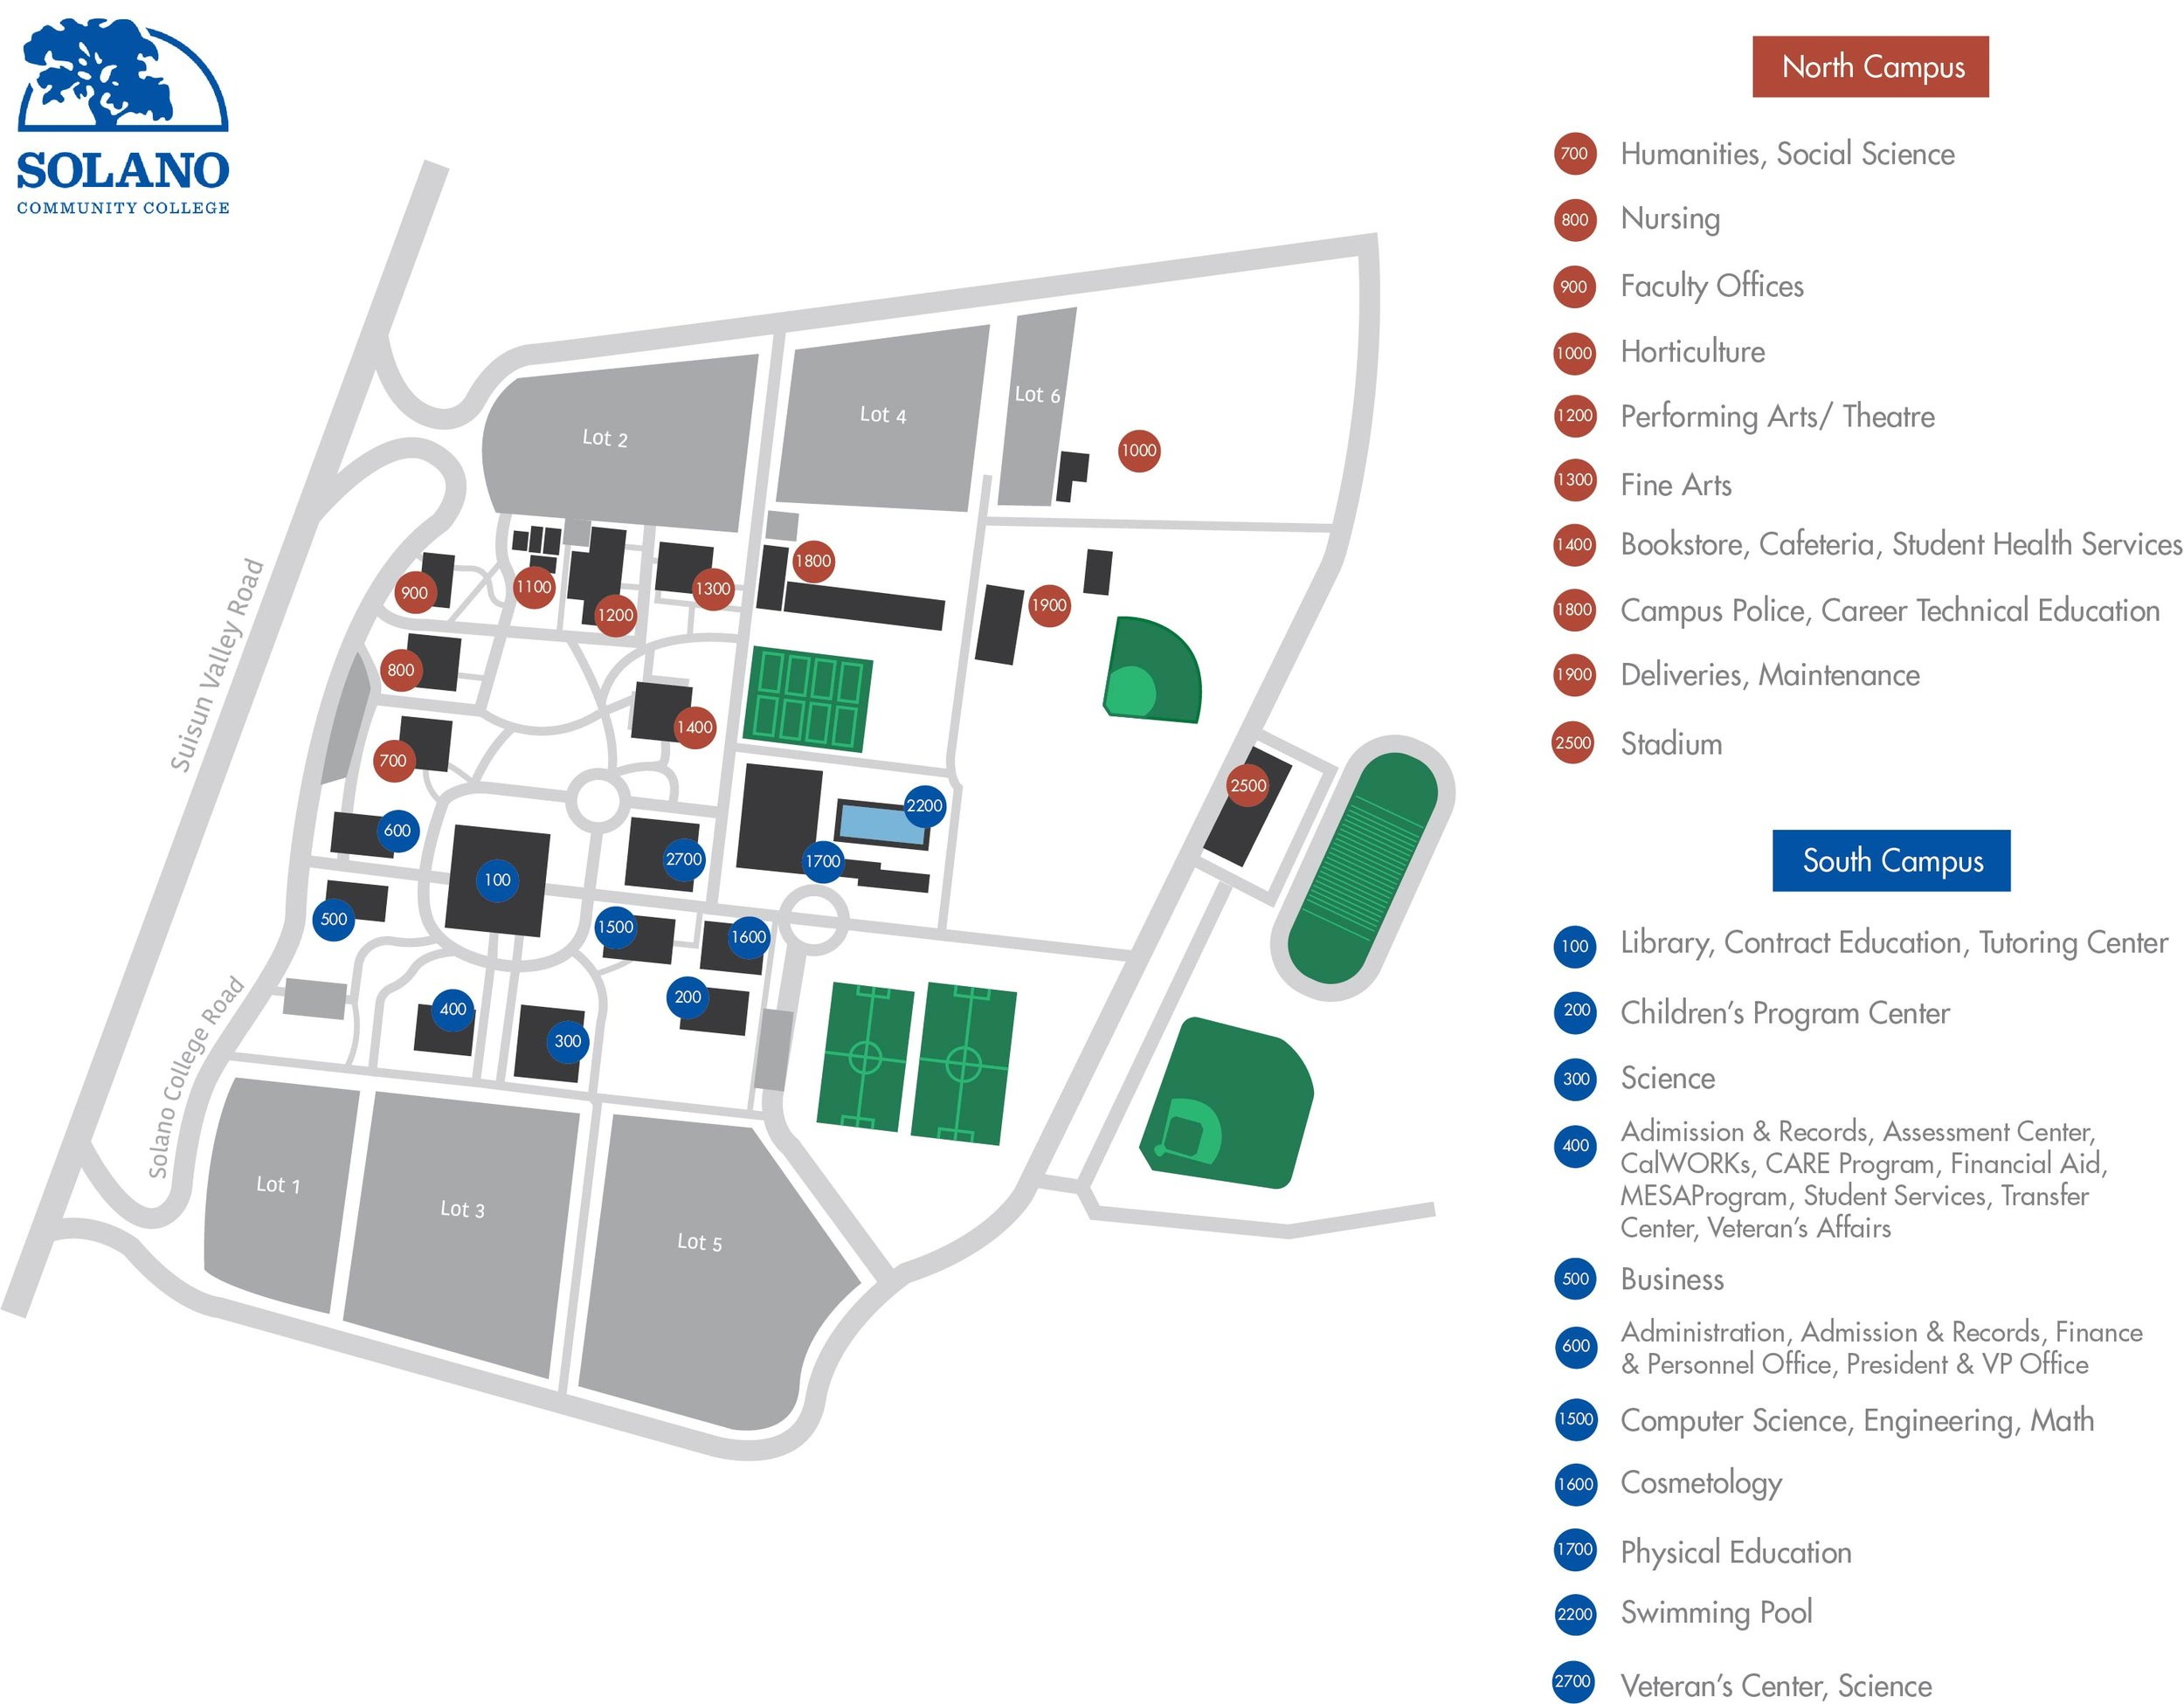 solano college campus map Environmental Joanna Rockwell